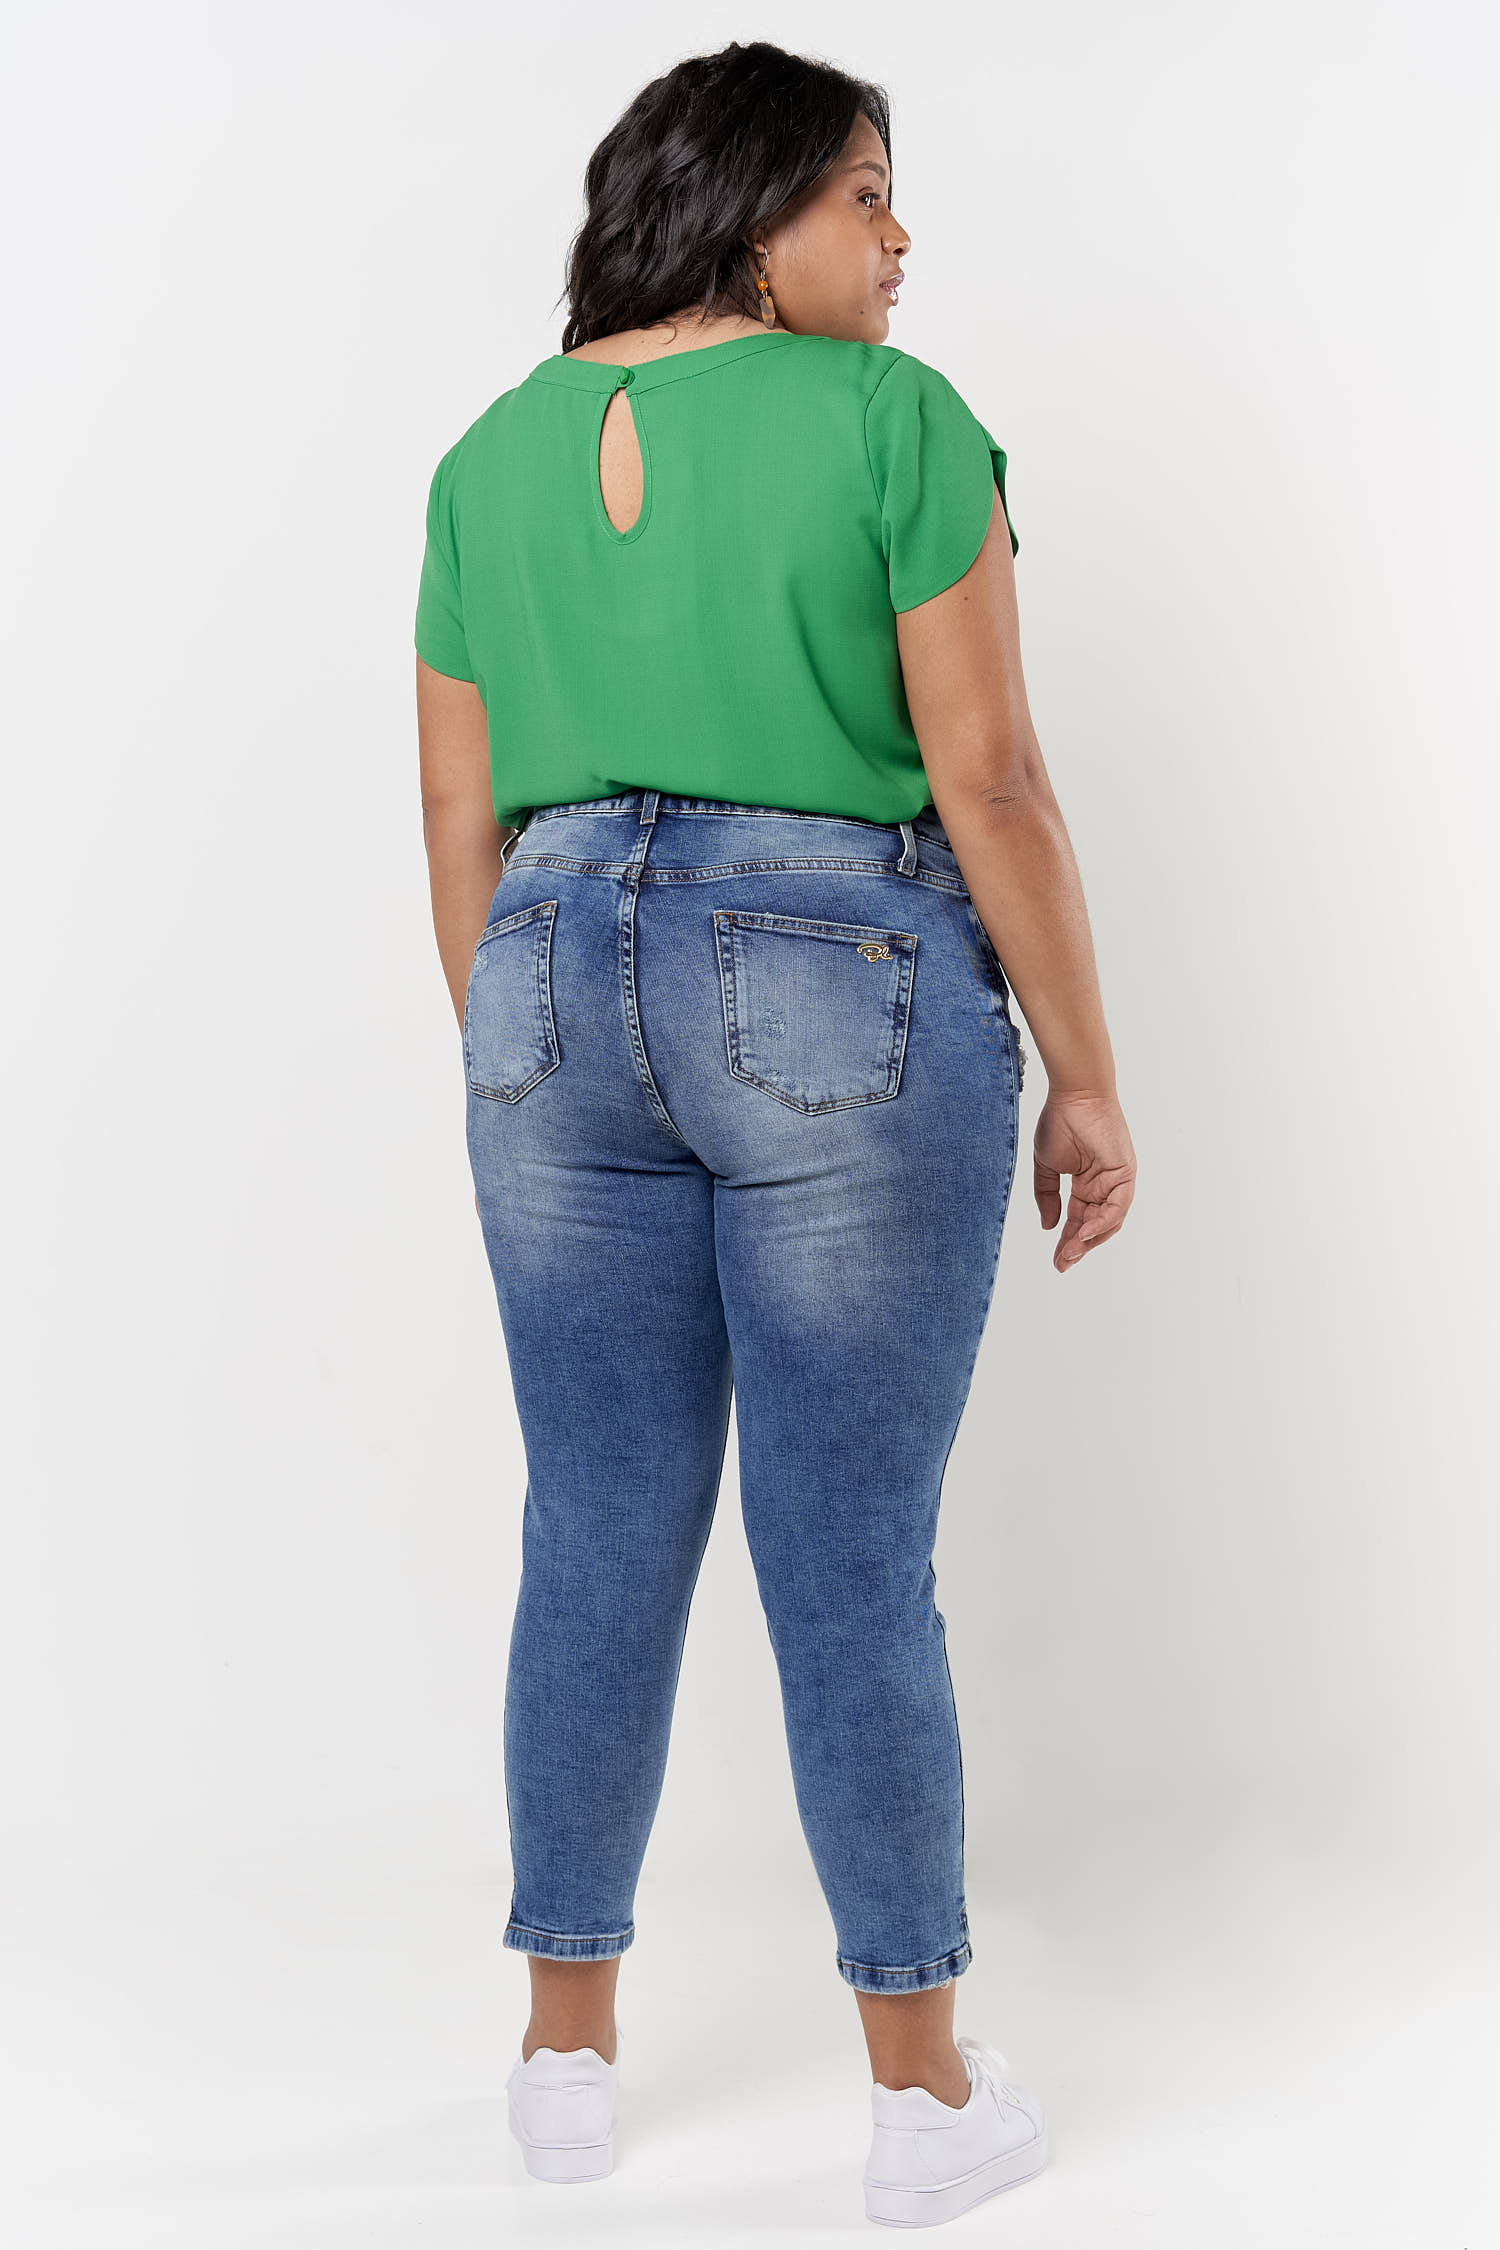 1484L2_Calca_Plus_Size_Jeans_Cropped_Louis_JEANS_4